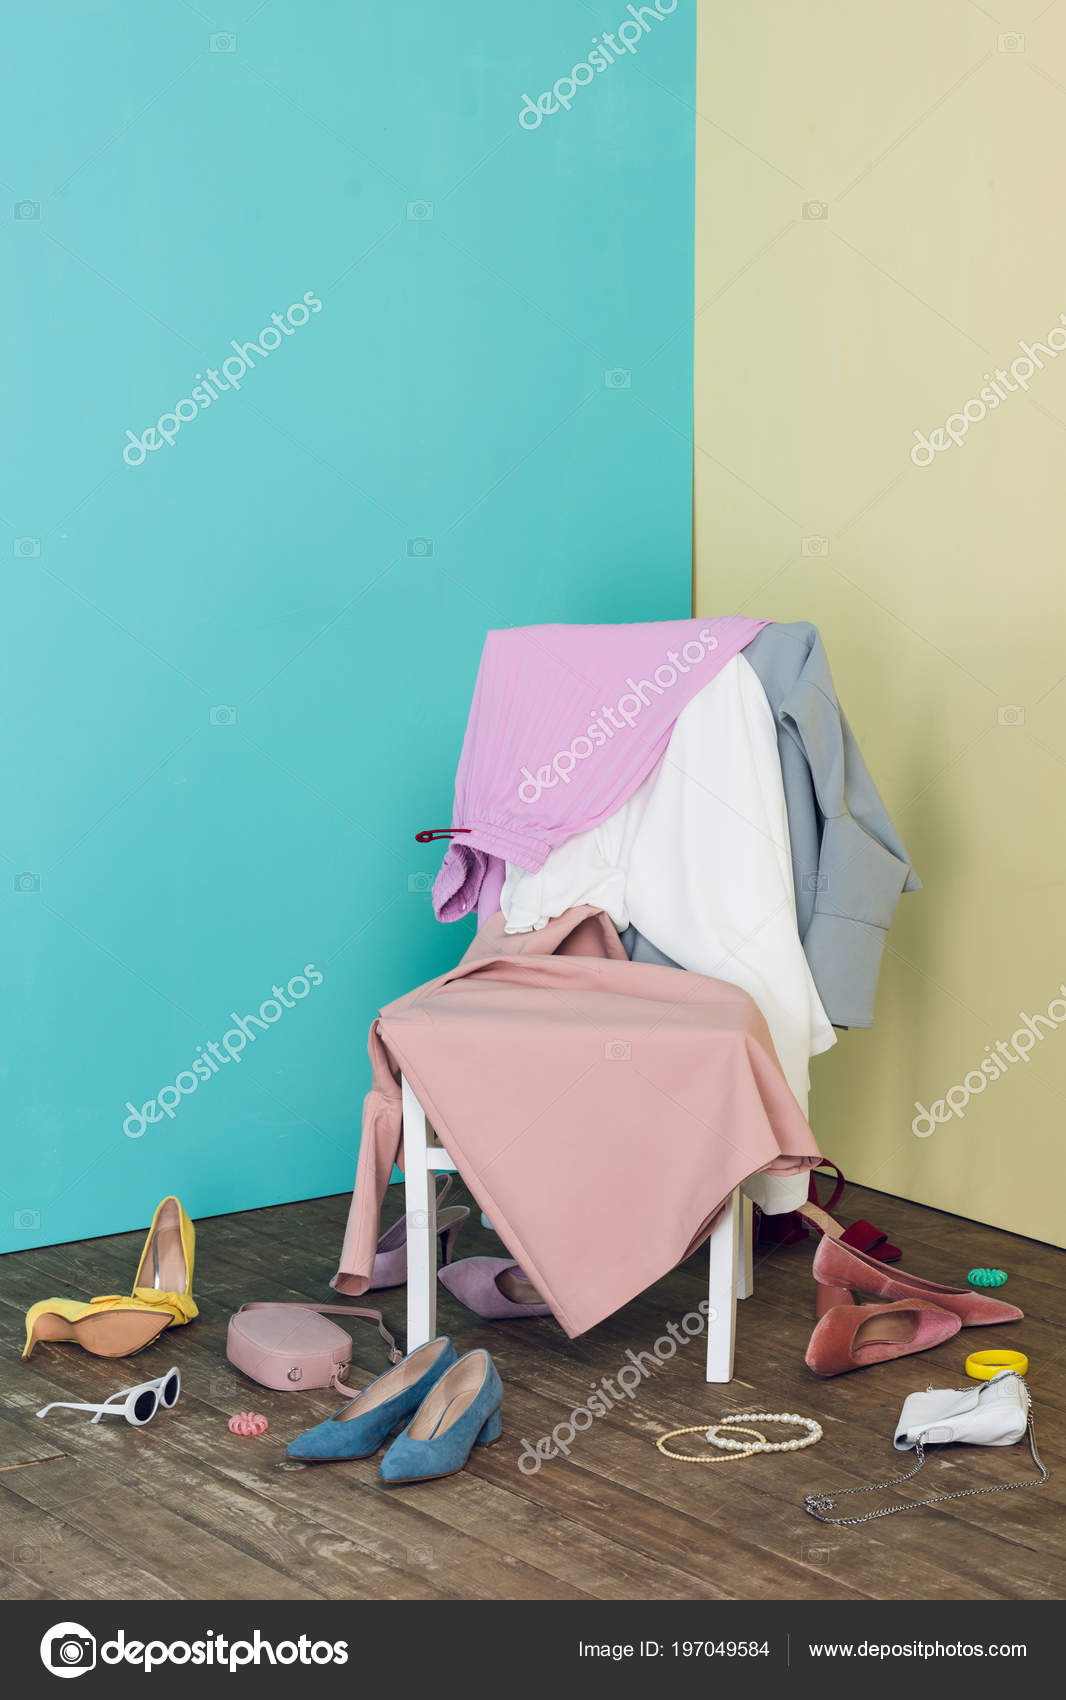 Messy Room Elegant Clothes Shoes Chair U2014 Stock Photo